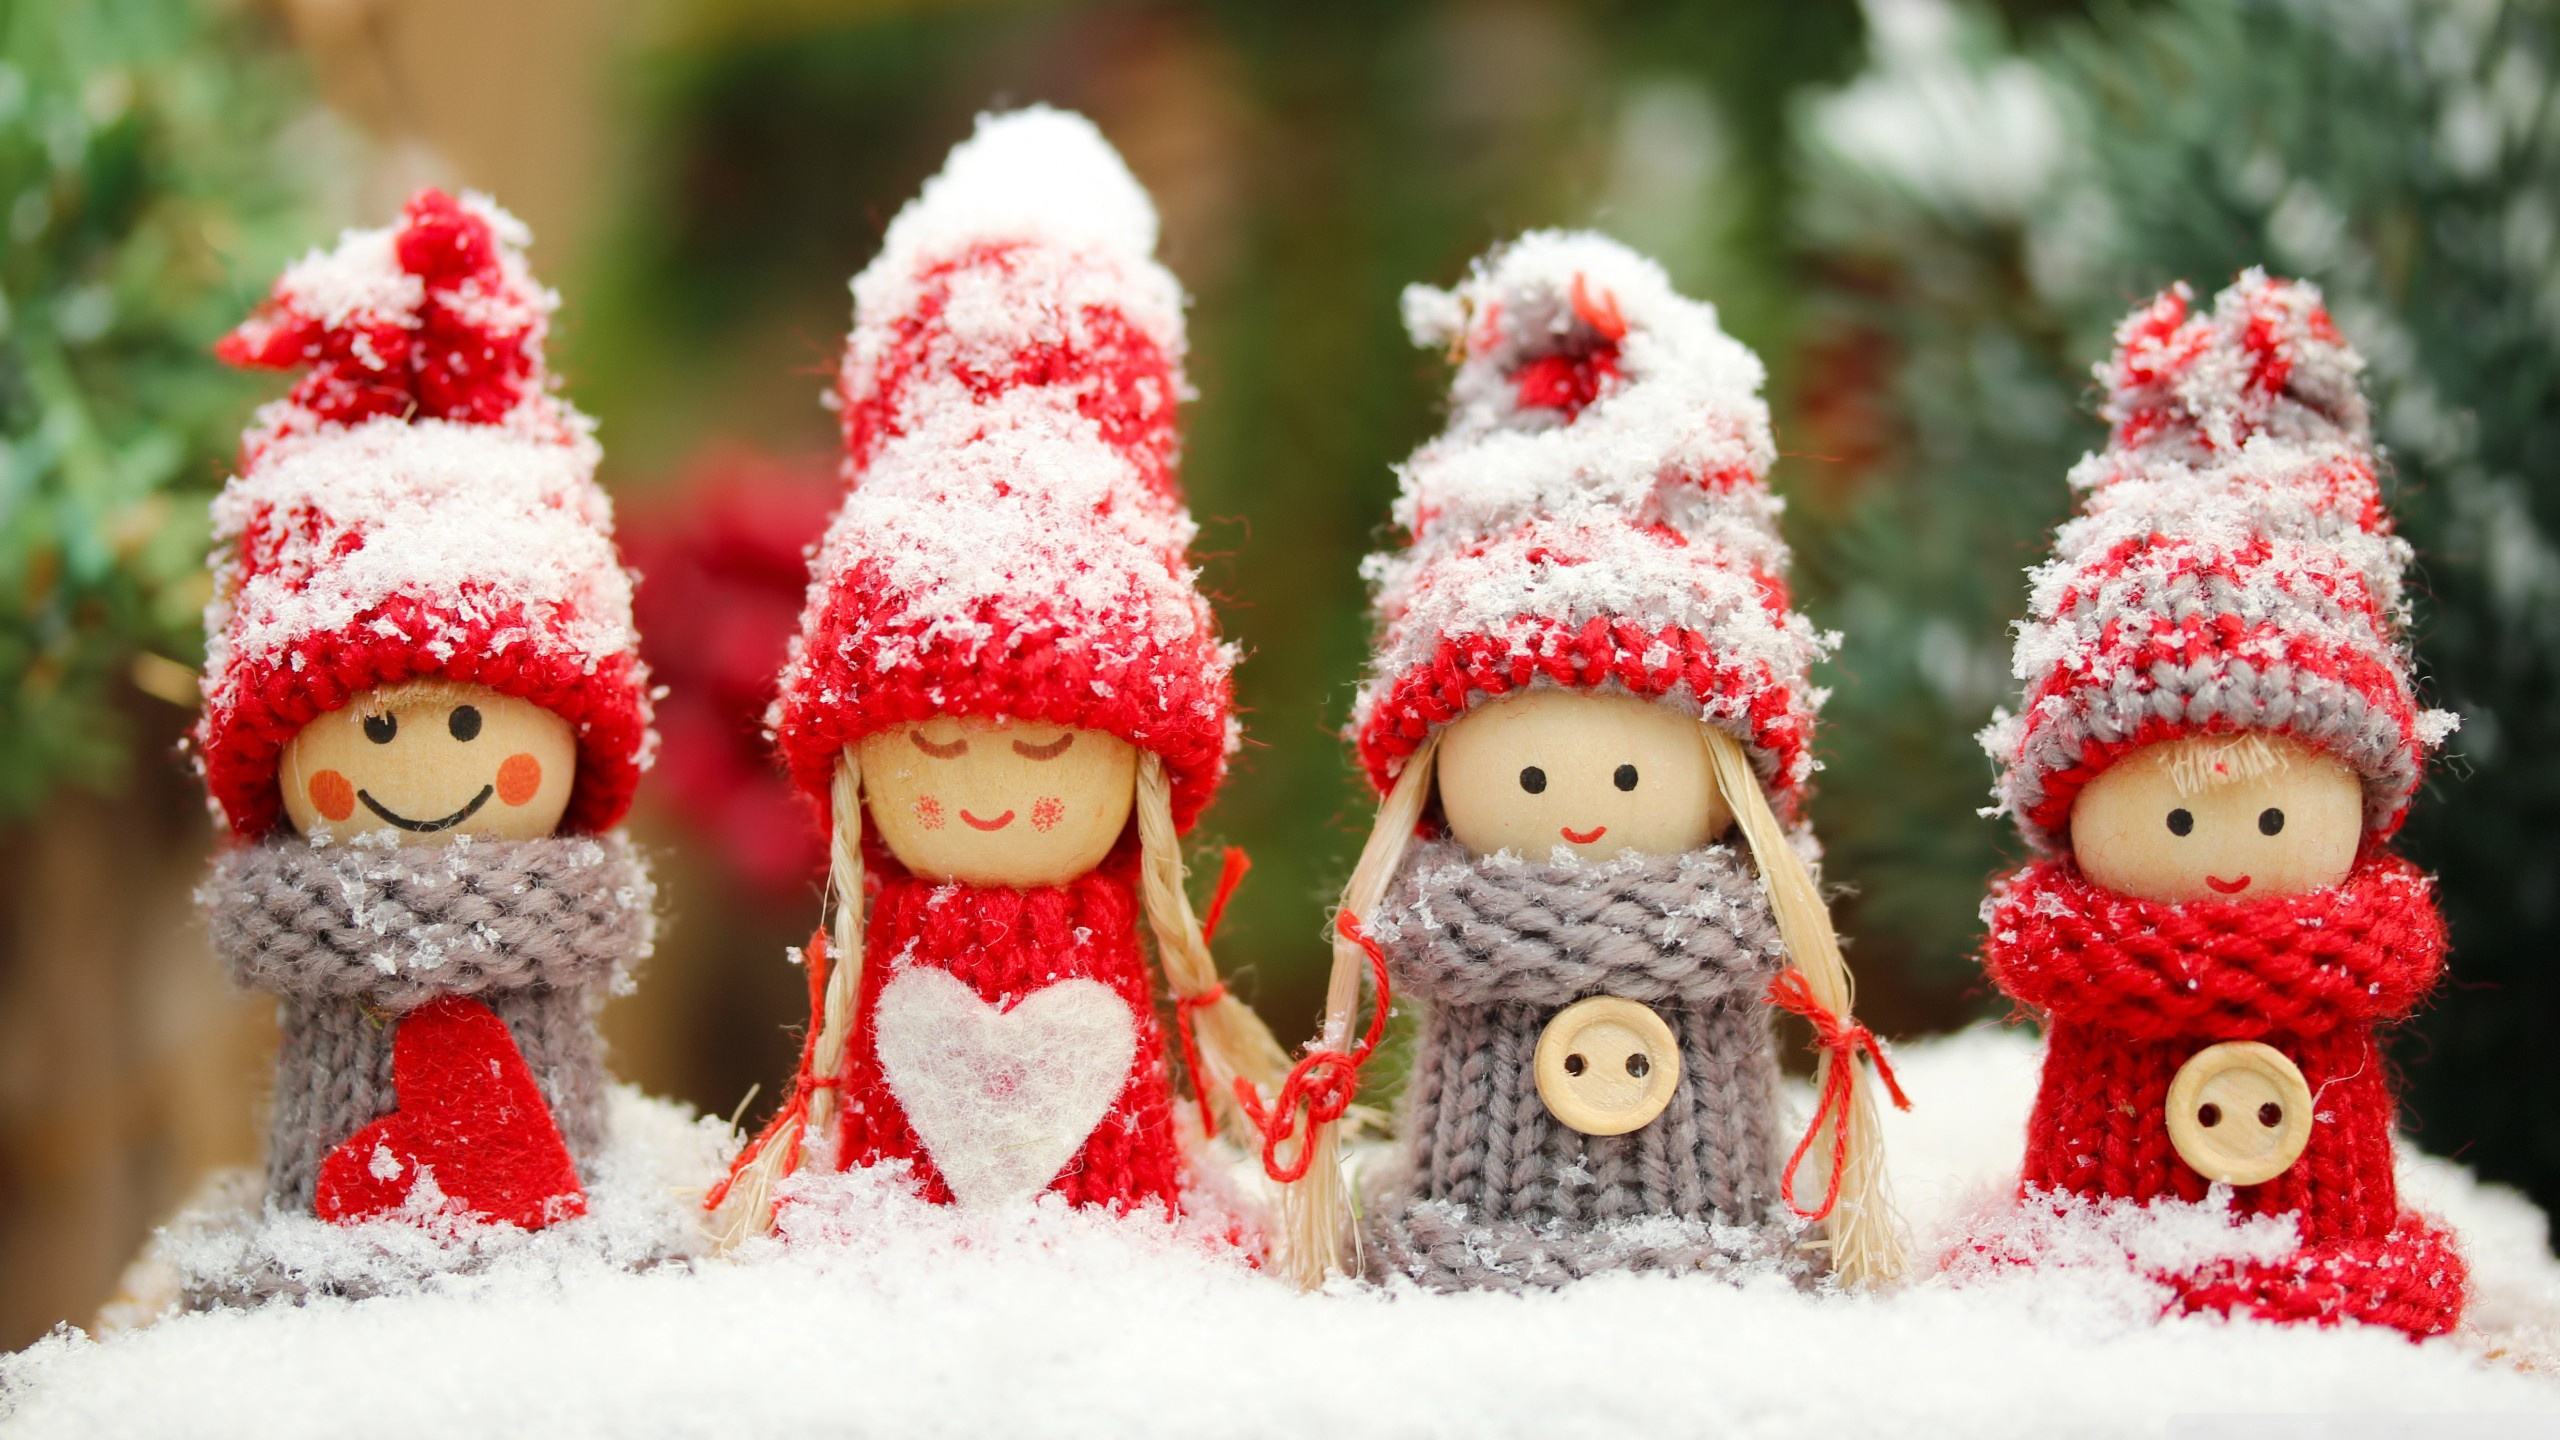 Winter Dolls ❤ 4K HD Desktop Wallpaper for 4K Ultra HD TV • Tablet ...